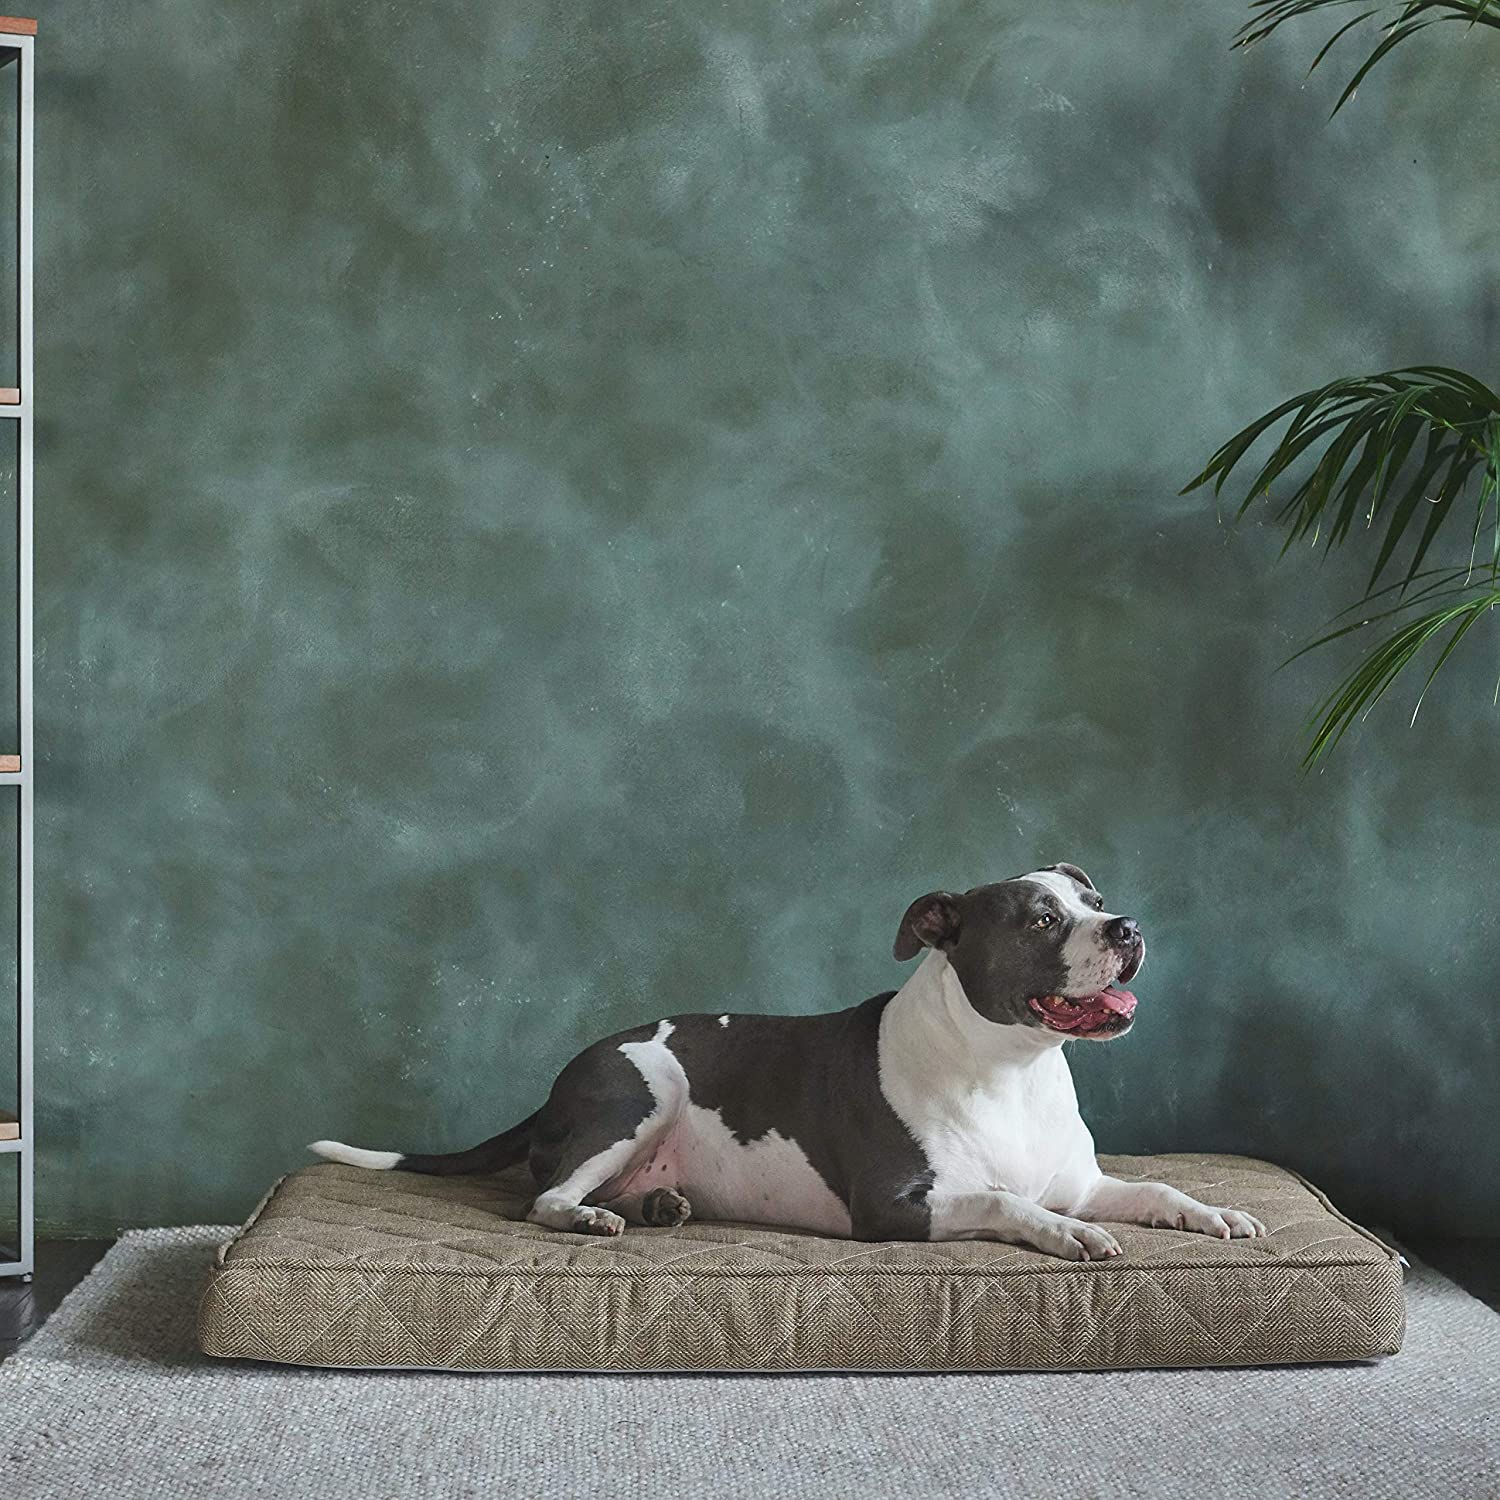 Brentwood Home Griffith Orthopedic Dog Bed - Cooling Gel Memory Foam with Washable Cover and Waterproof Liner, for Cats and Dogs, Made in California, Sandstone, Size X-Large